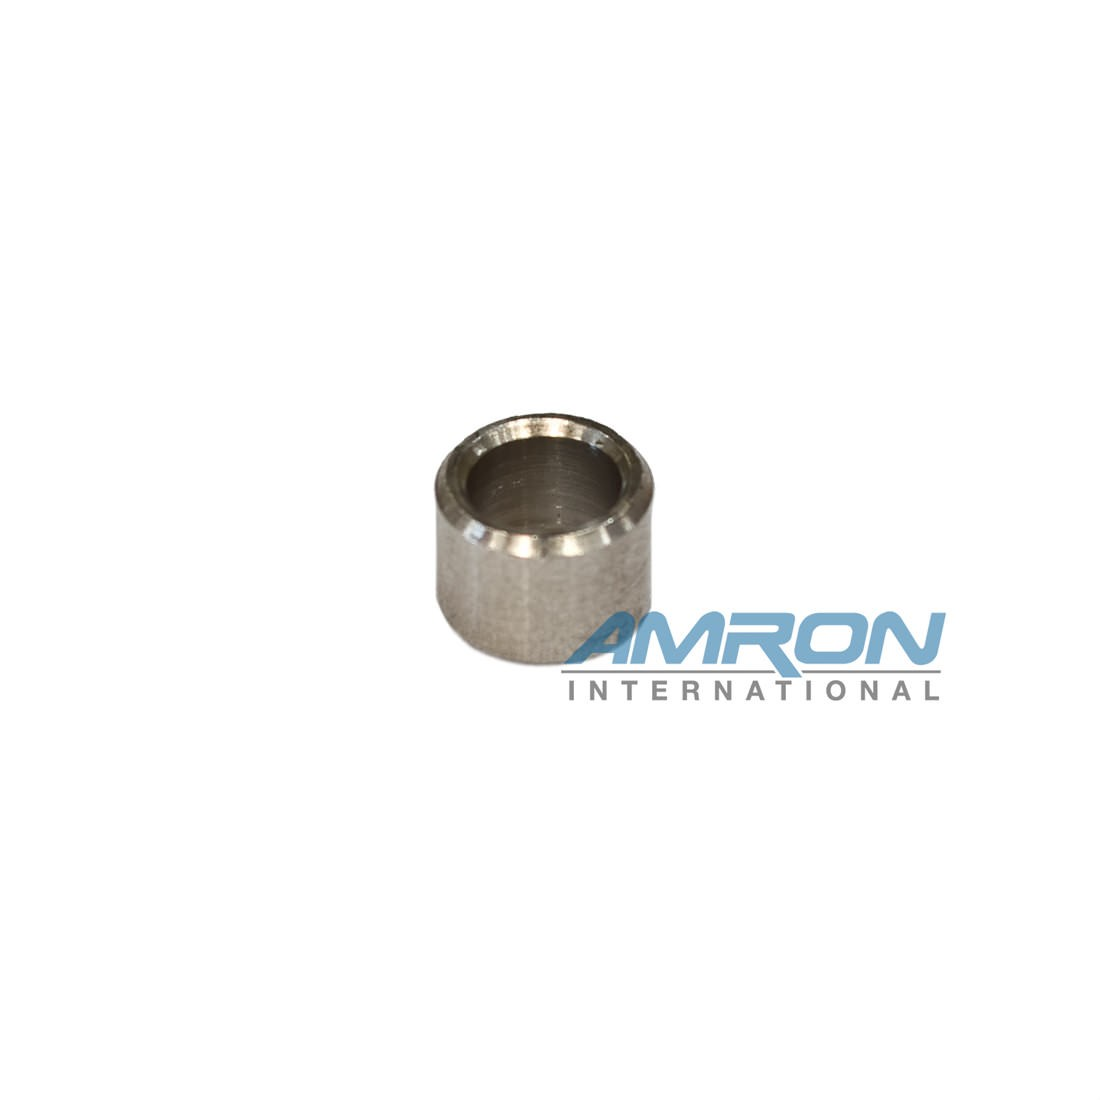 Kirby Morgan 550-061 Spacer